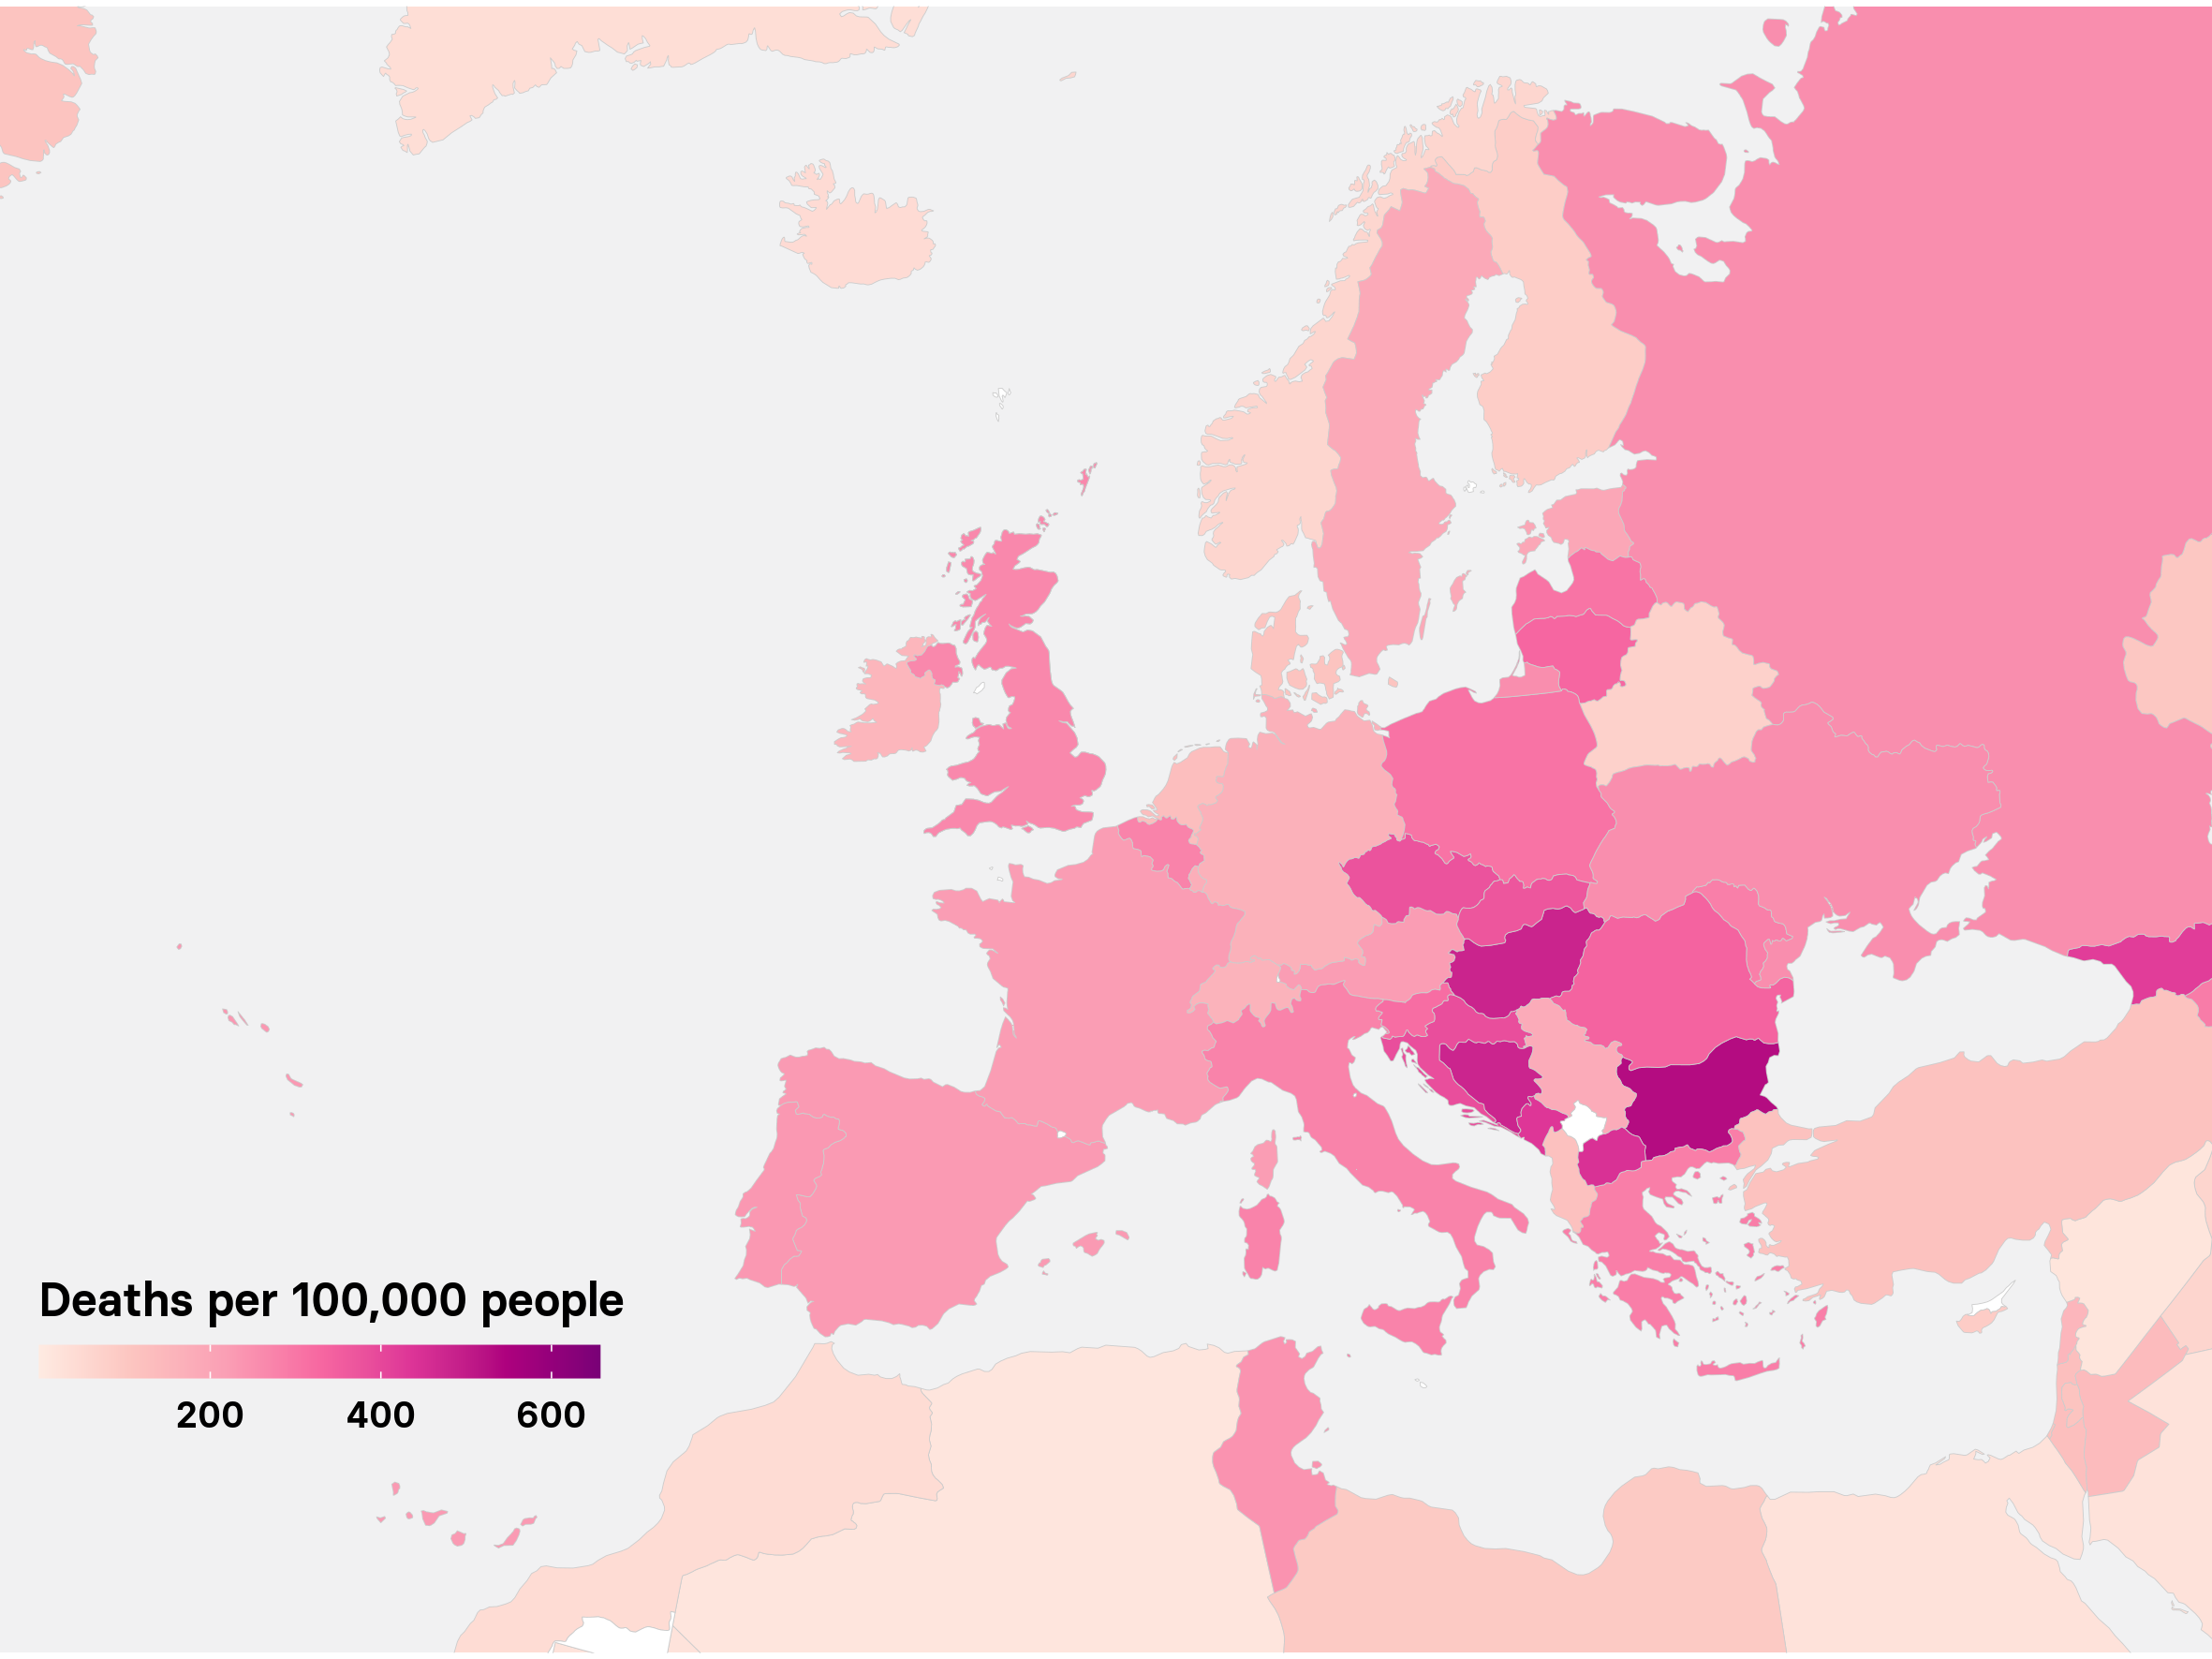 Europe deaths map